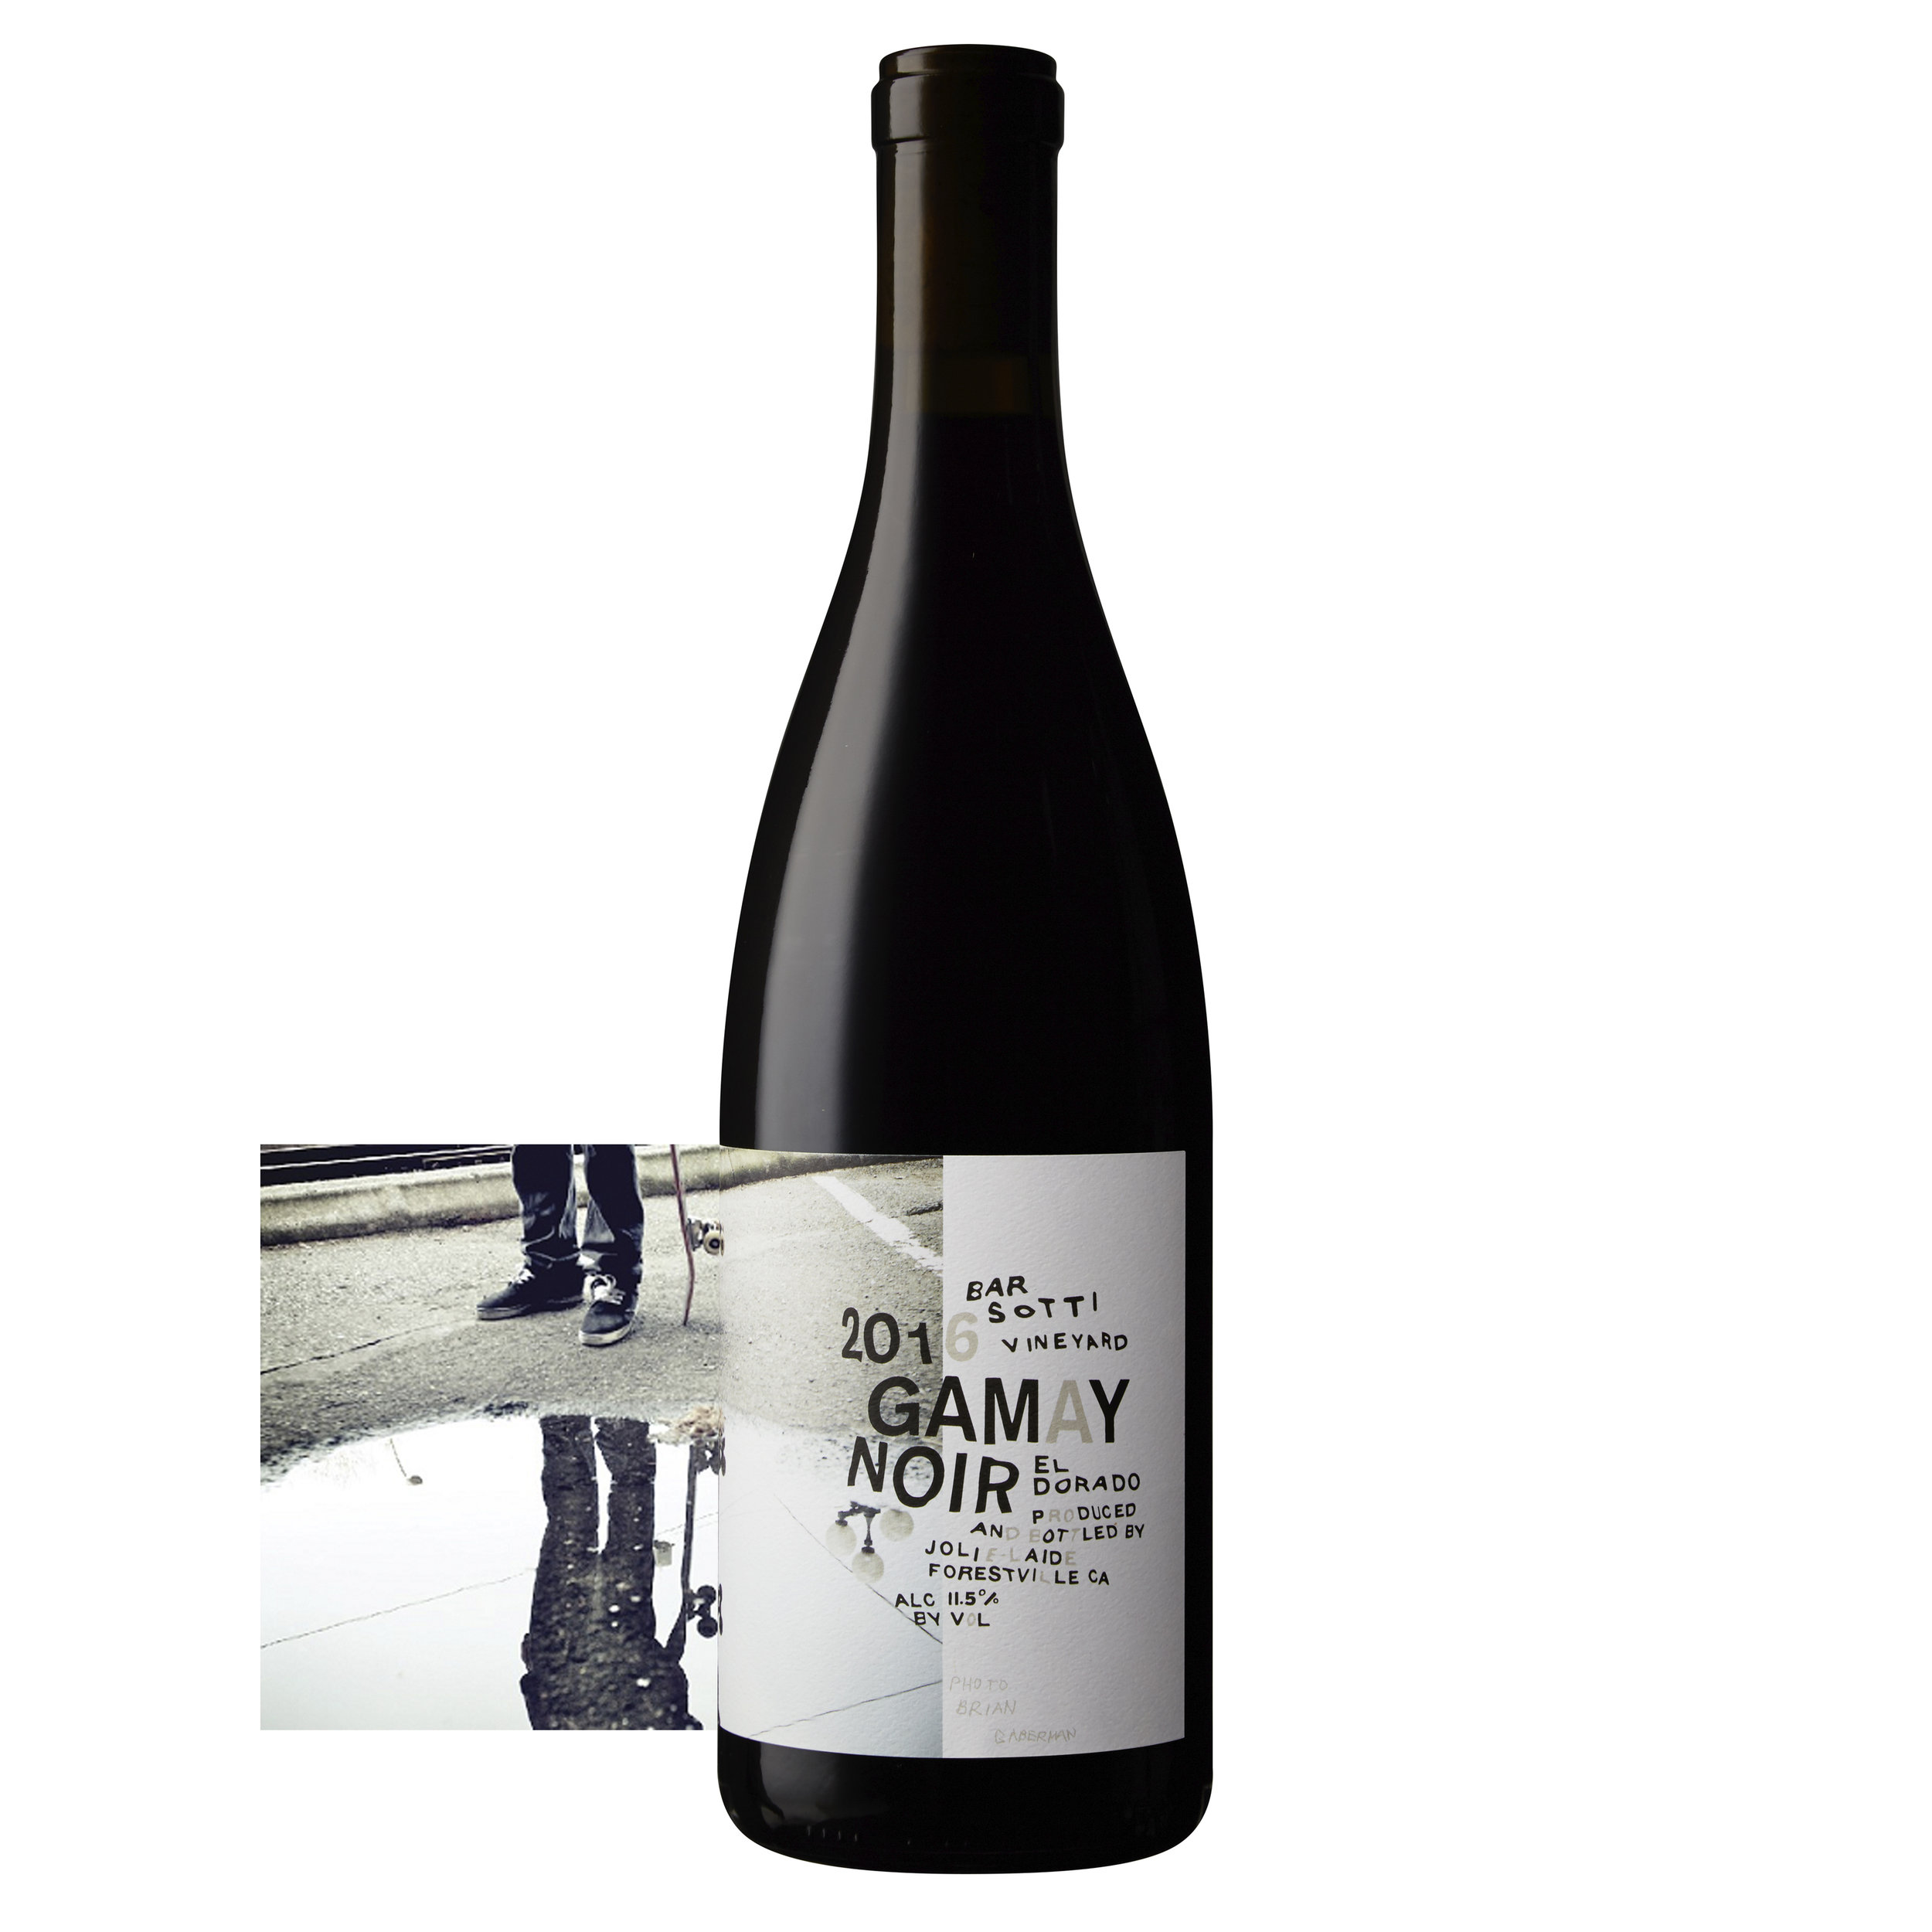 Wrap around label bottle shot photography by Sonoma Bottle. Jolie-Ladie's limited release 2016 Gamay Noir featuring artwork by Brian Gaberman.